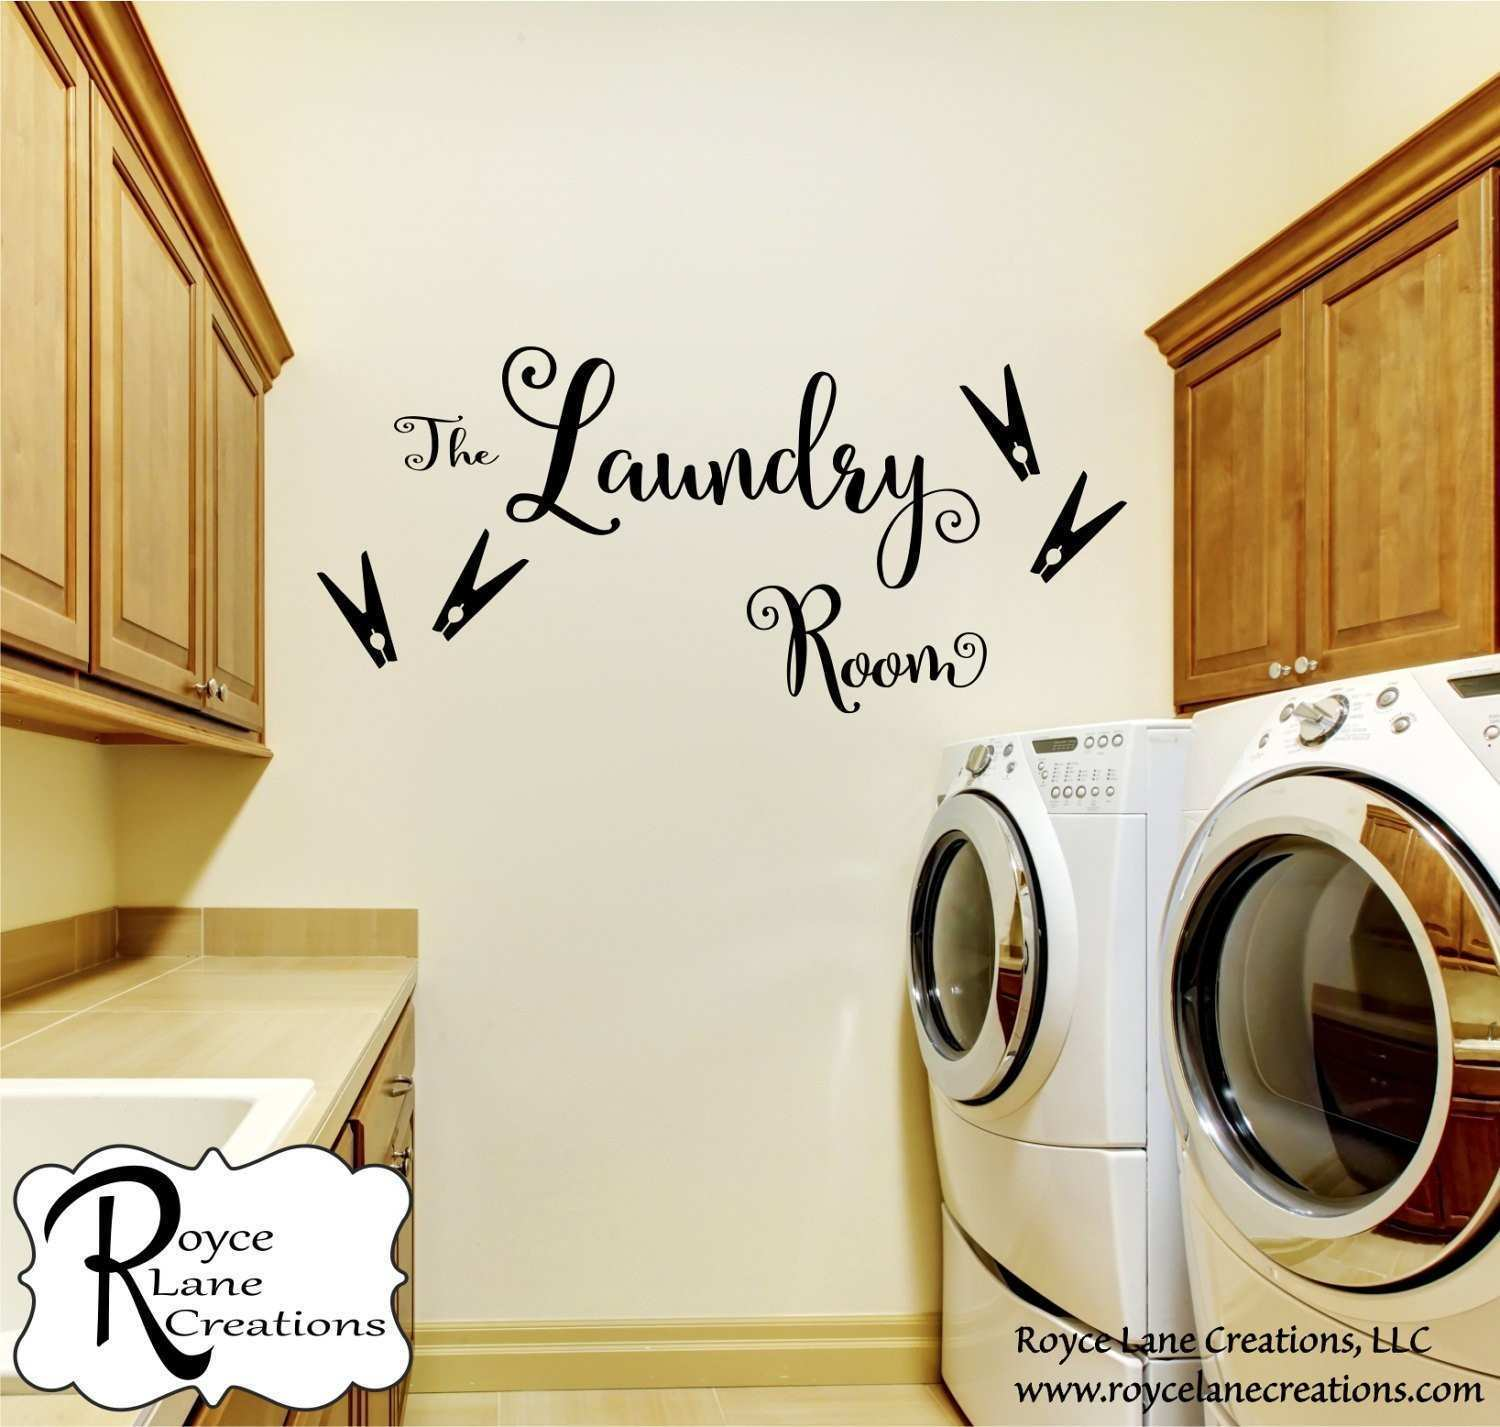 Laundry Room Decal The Laundry Room L6R Laundry Decal Laundry